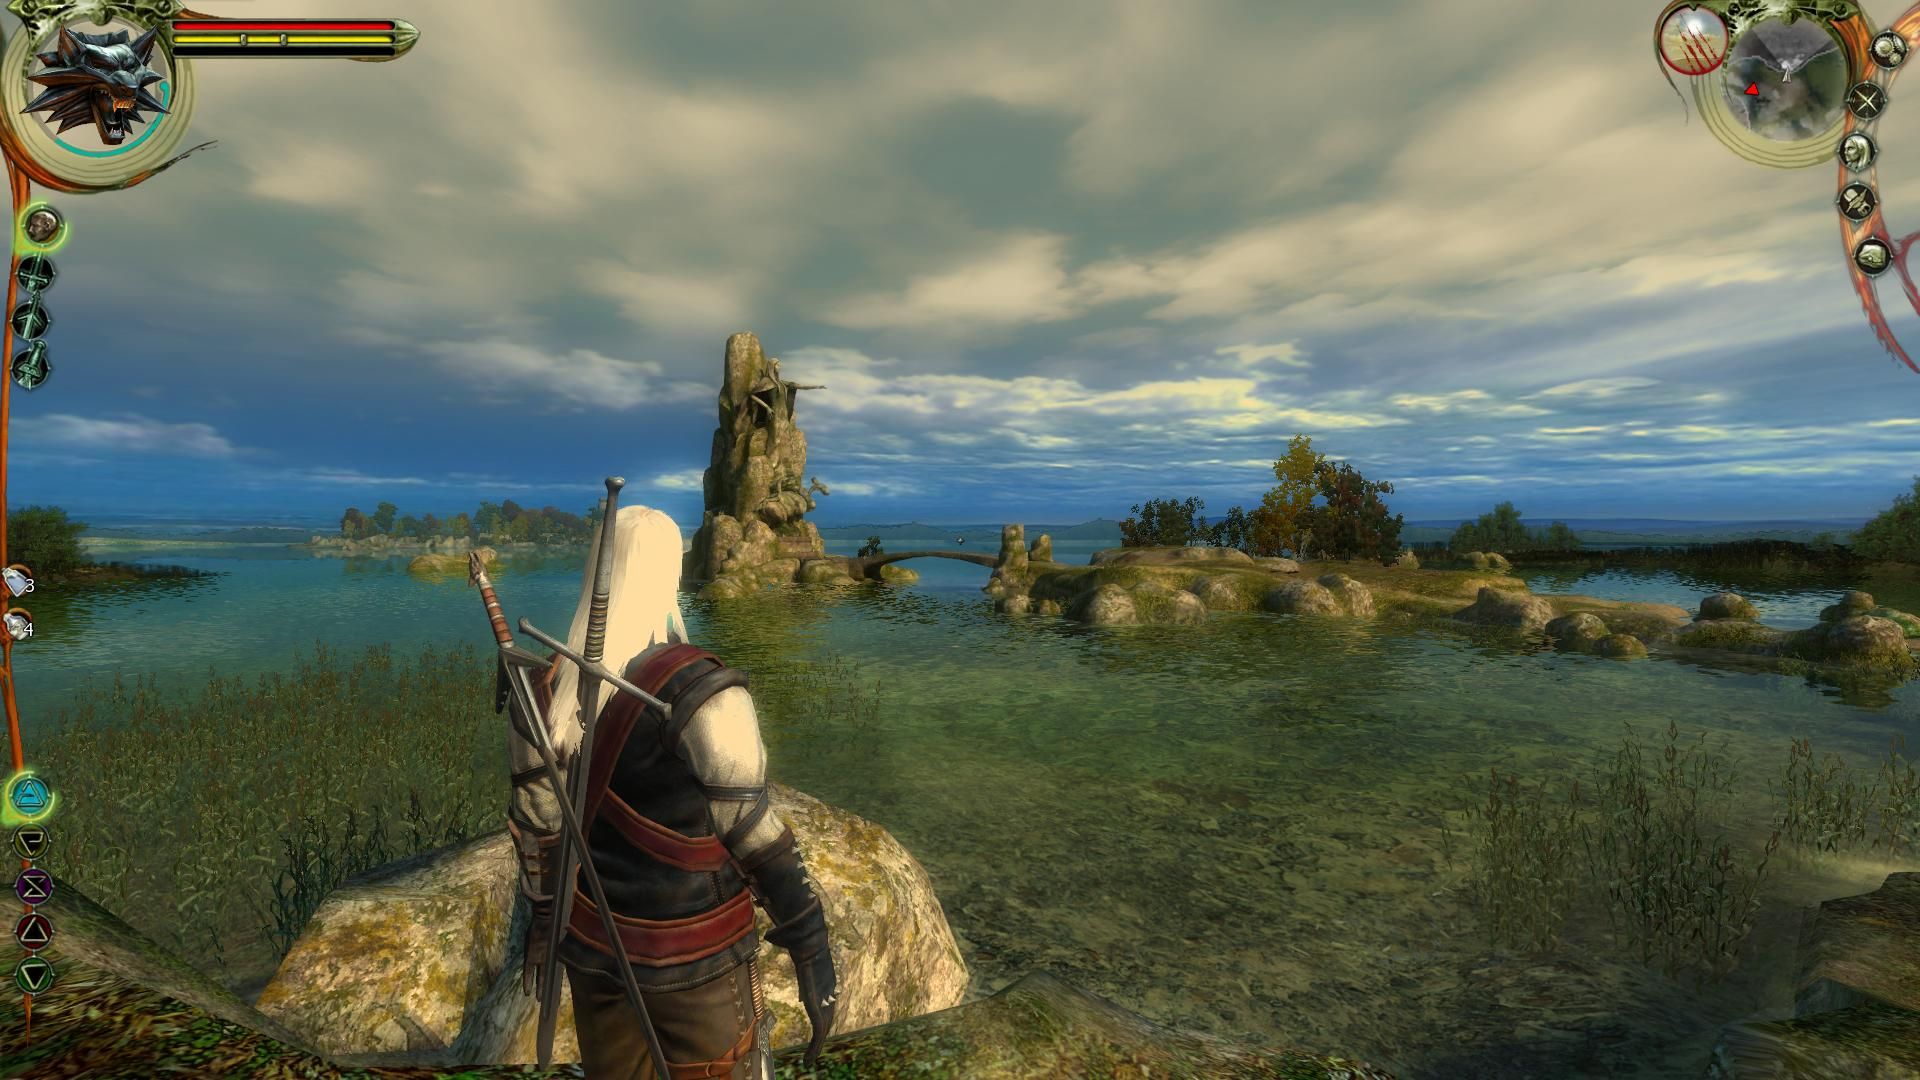 The Original Witcher Prototype Was A Top Down RPG With No